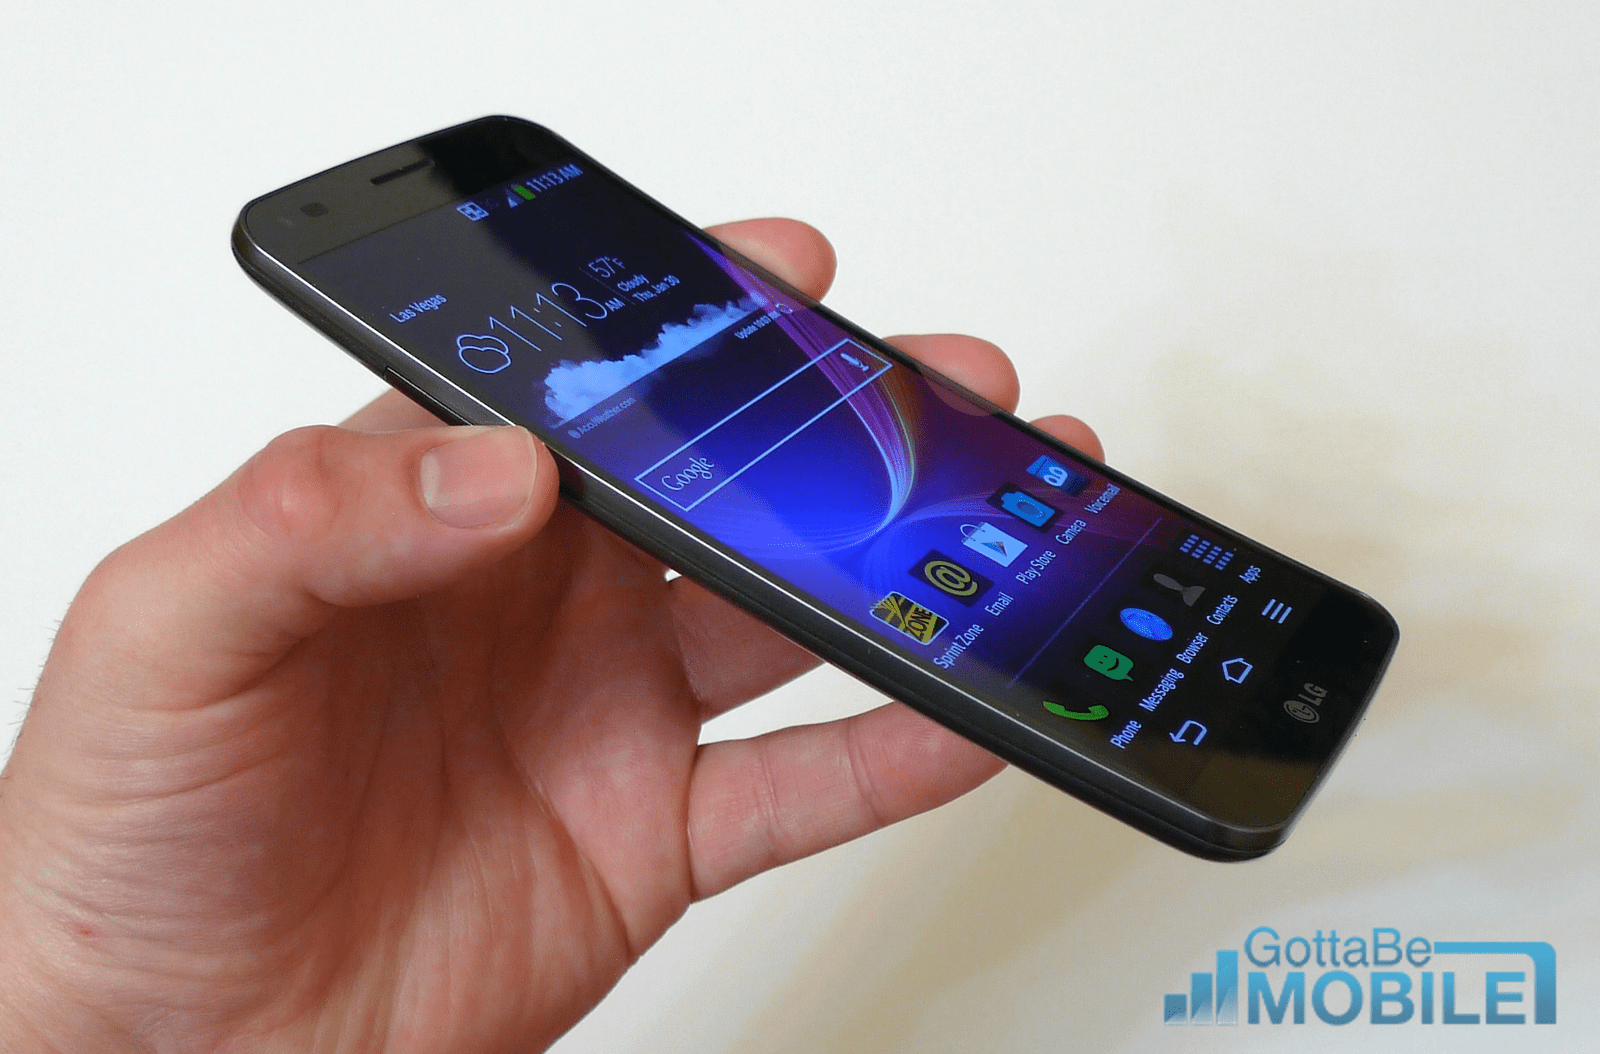 LG G Flex Curved Phone Heads to More US Carriers